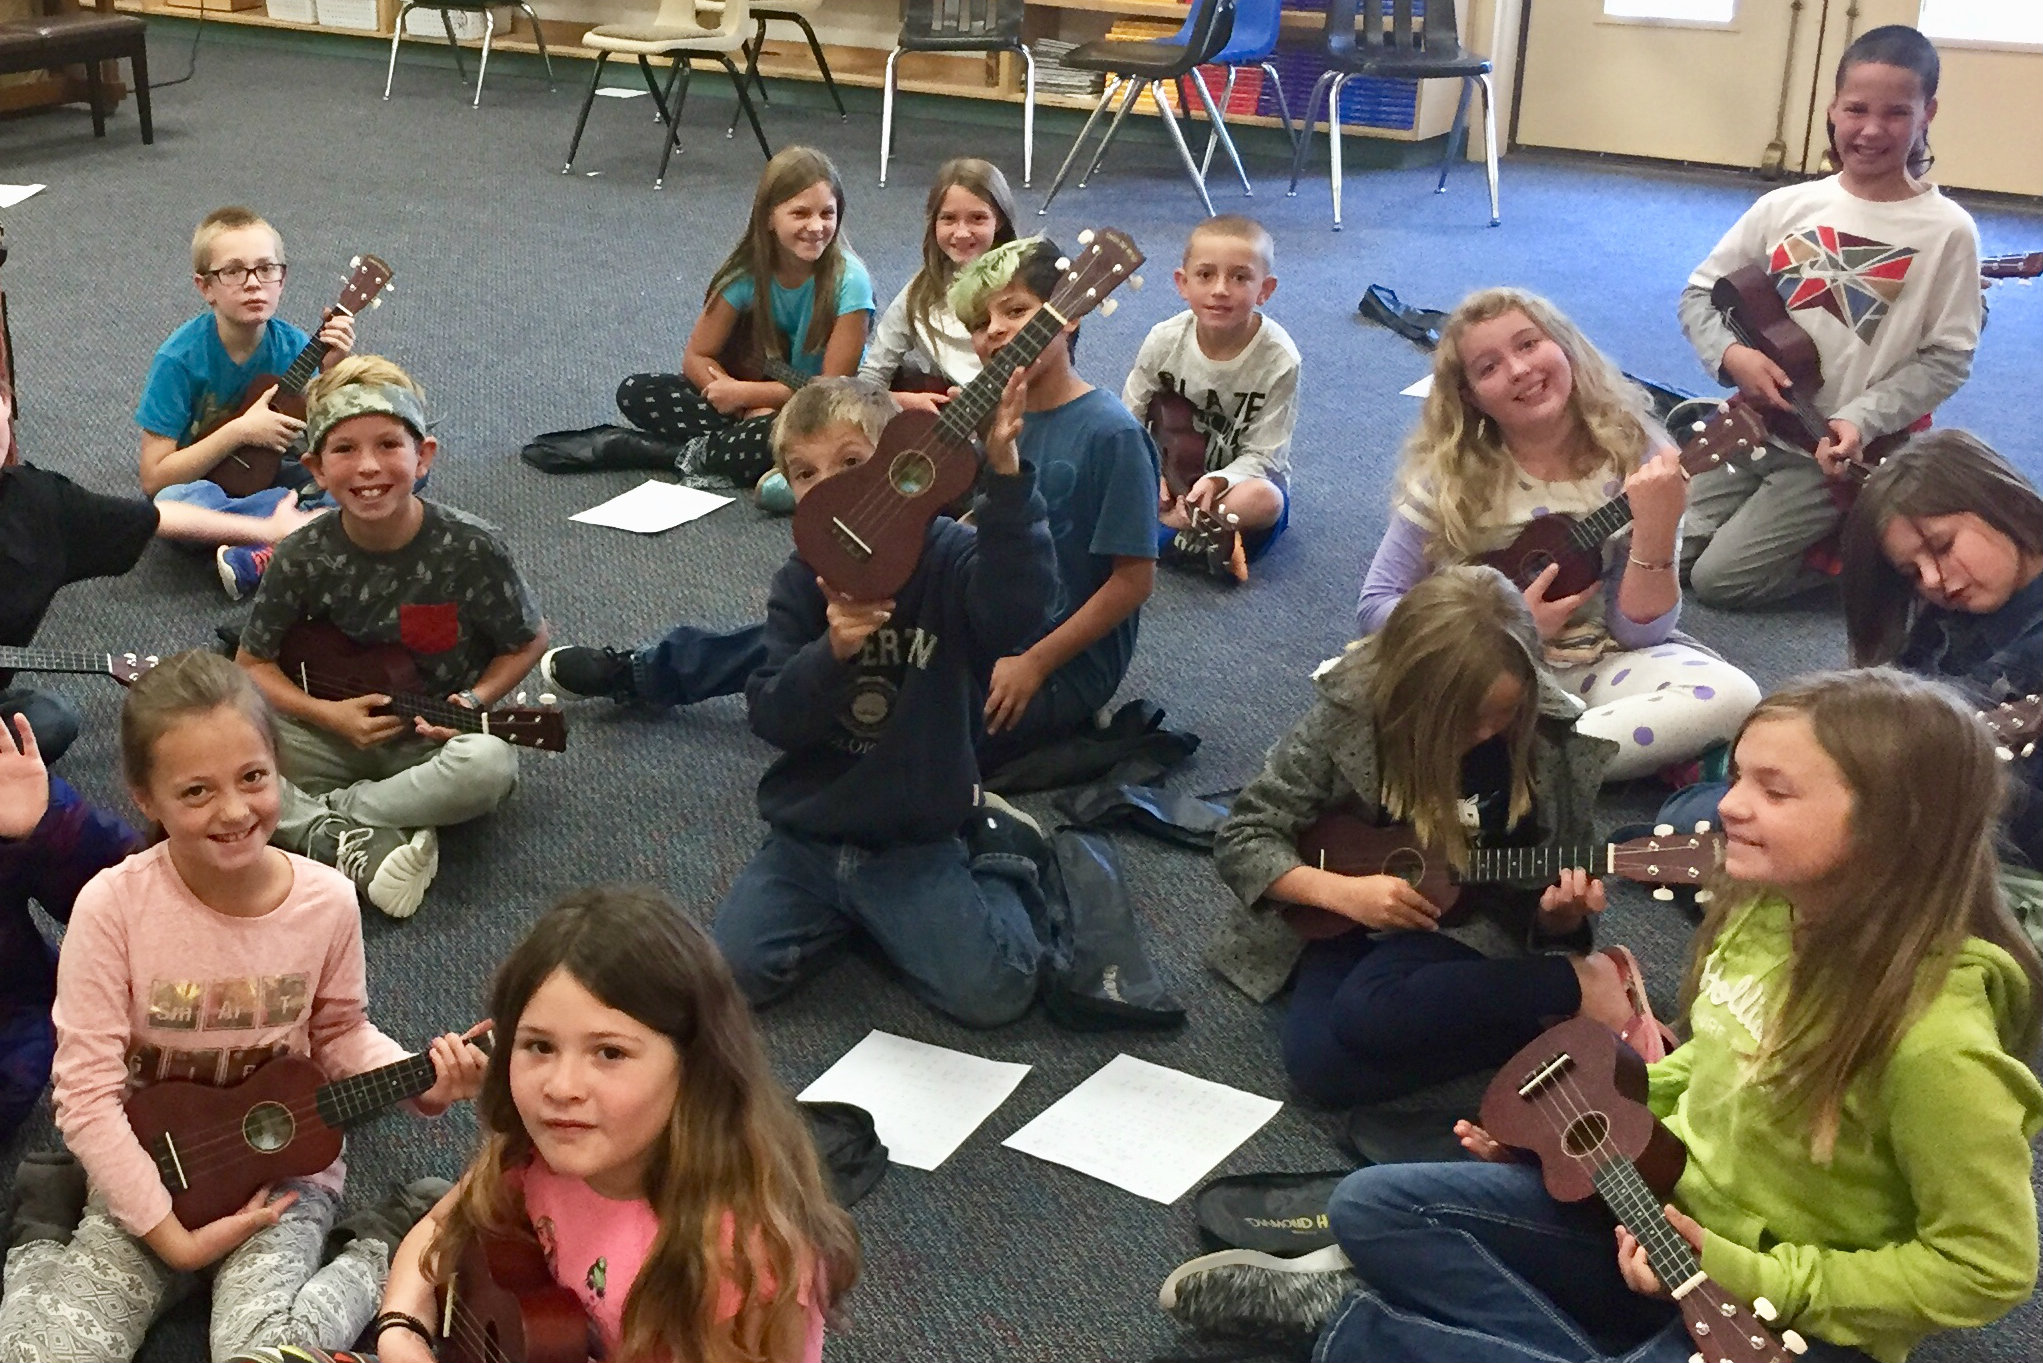 <p>The ukulele club at Fort Lewis Mesa Elementary School with their school instruments donated by the Bringing Music to Life Instrument Drive.</p>